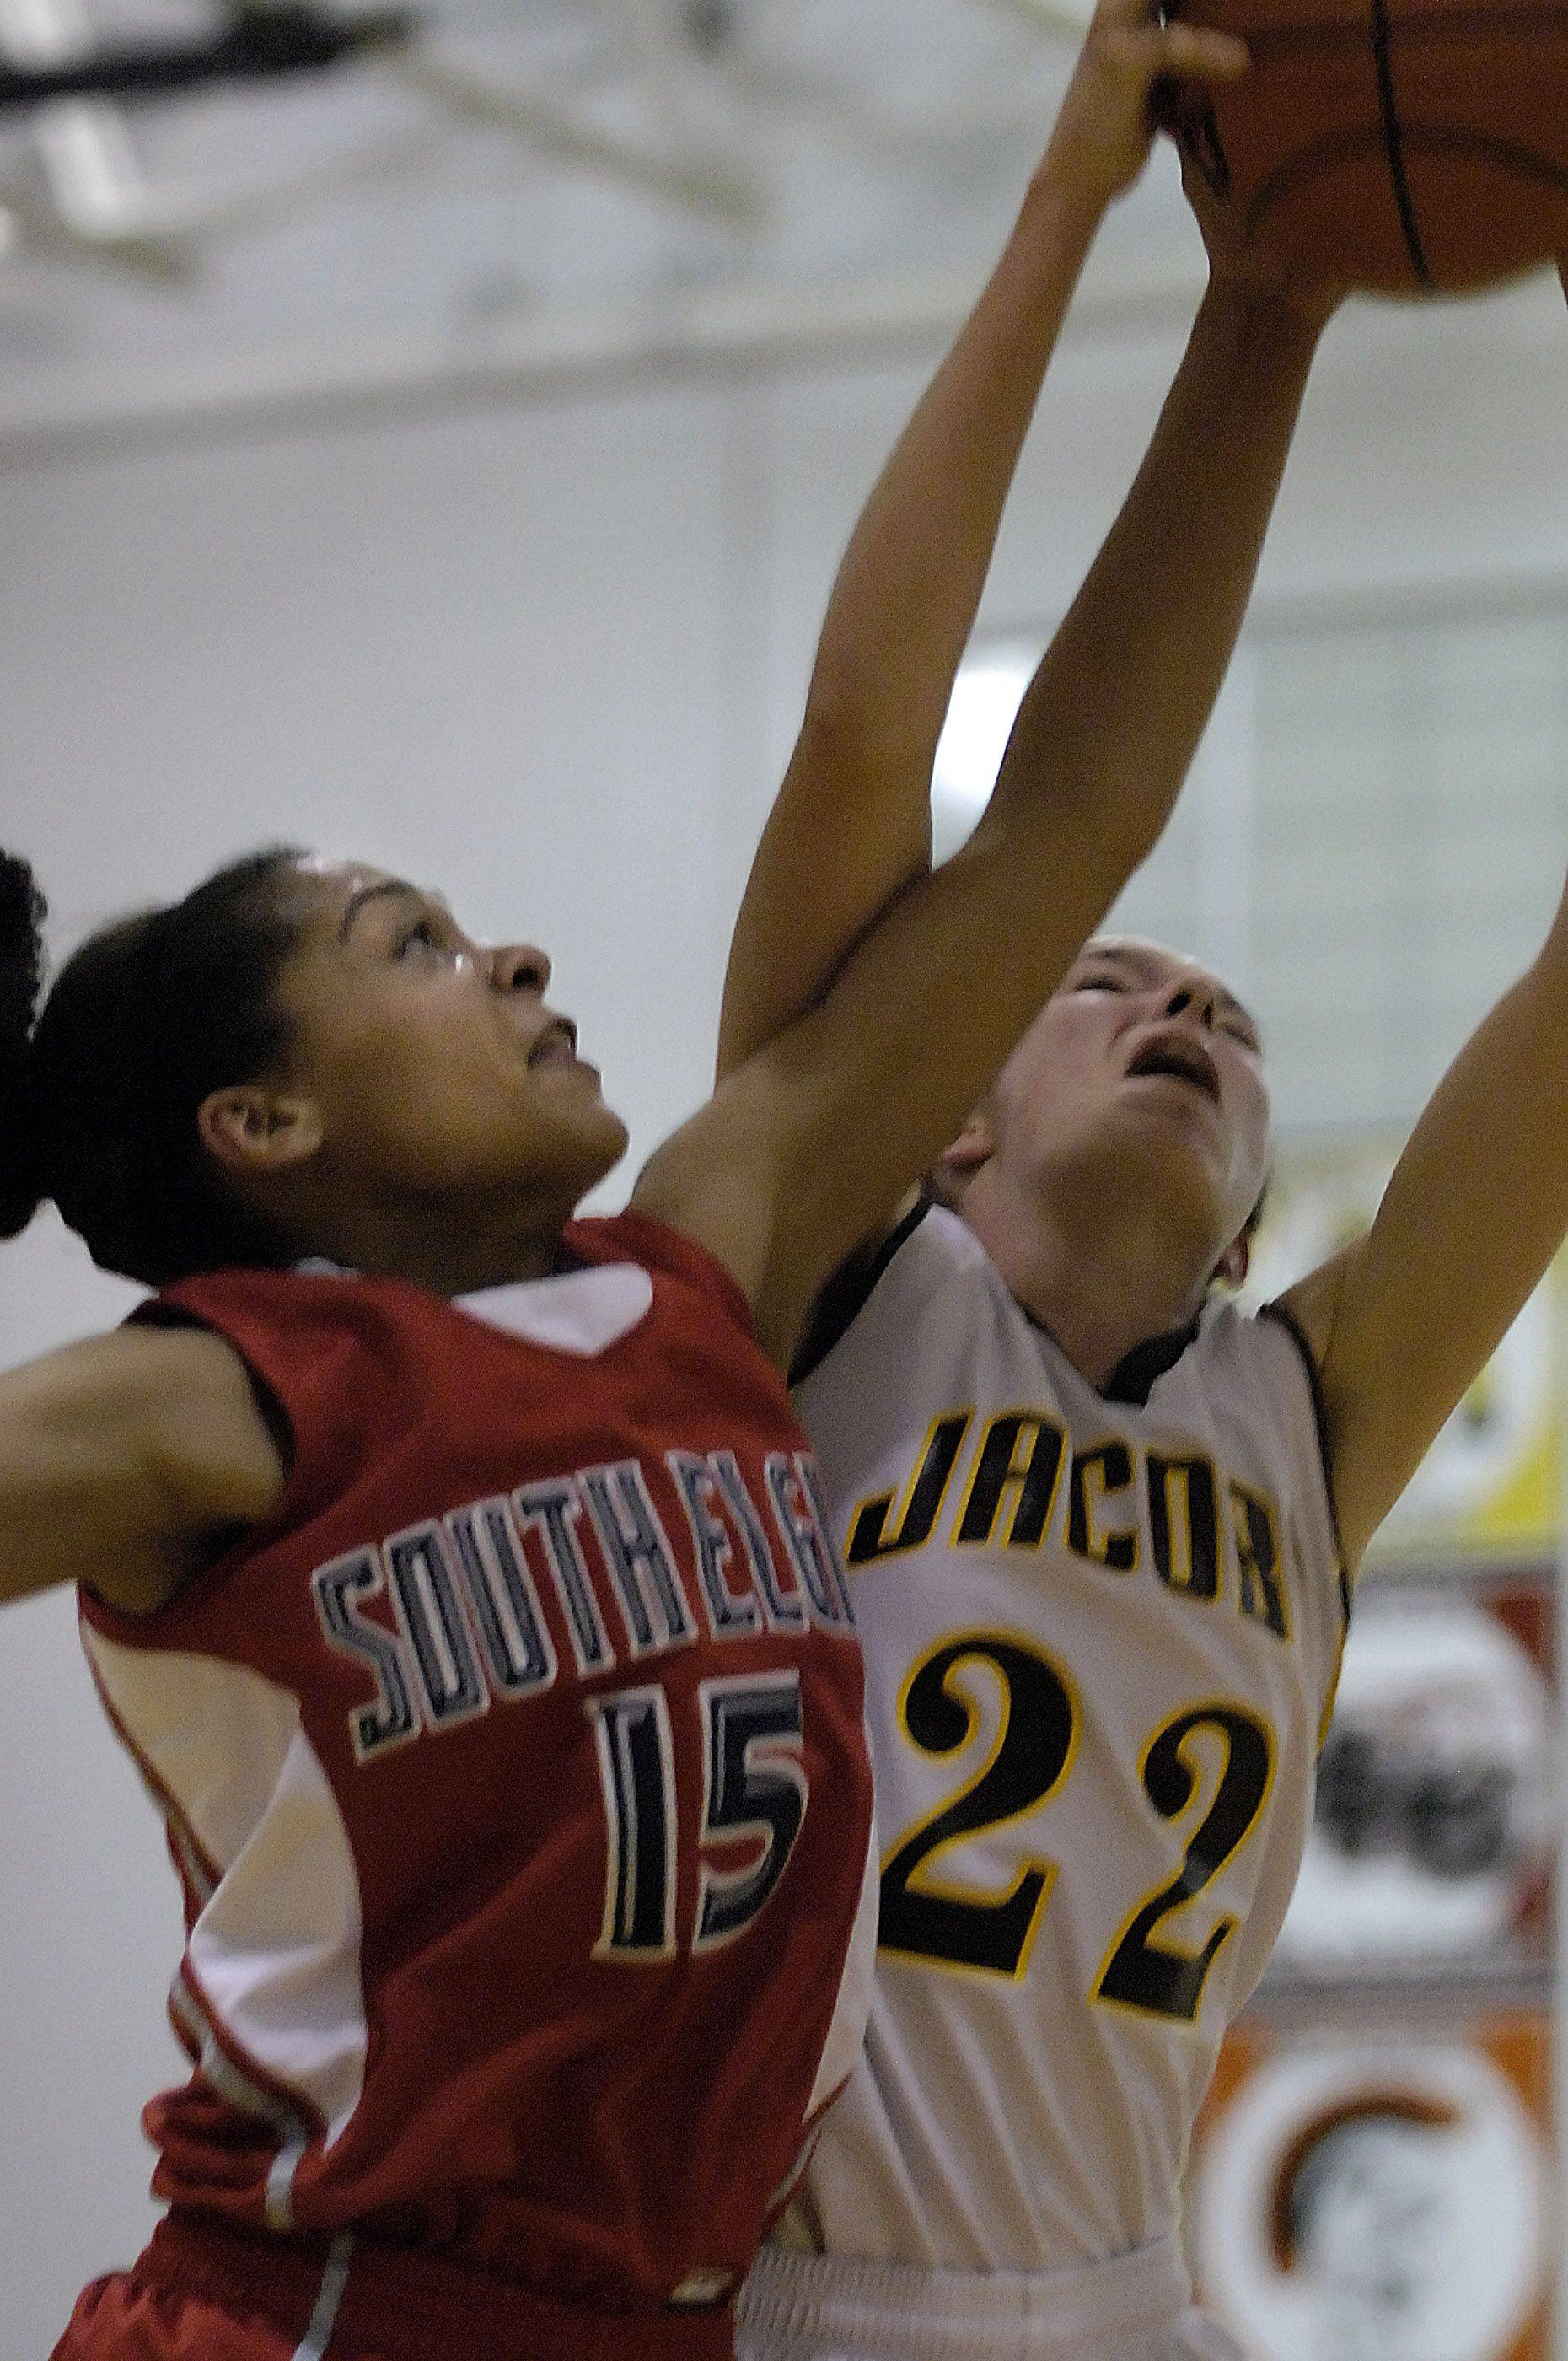 Images from the South Elgin vs. Jacobs girls basketball game Wednesday, December 8, 2010.